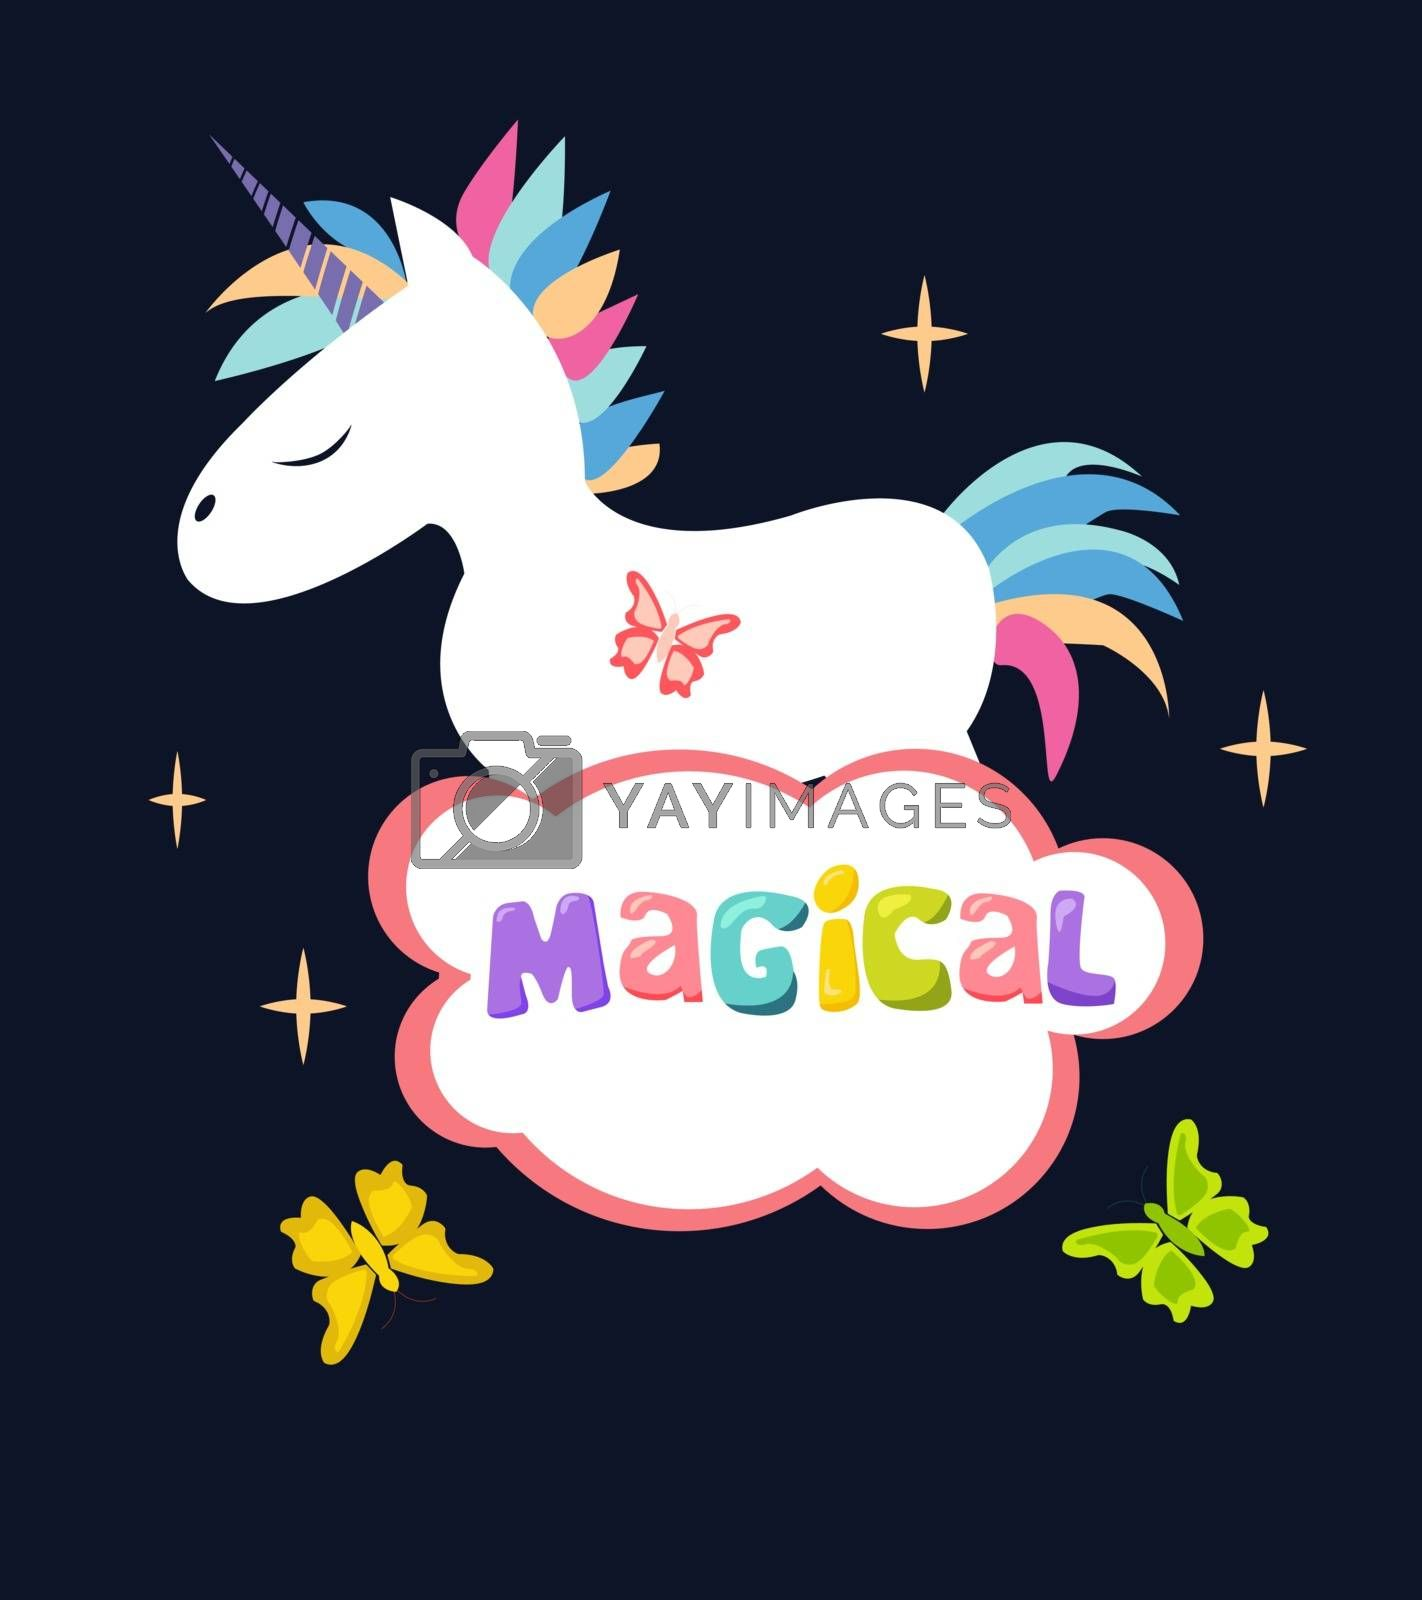 Cute Magical Unicorn isolated on dark background Vector Design. Design can be used for greeting cards, posters and party invitations